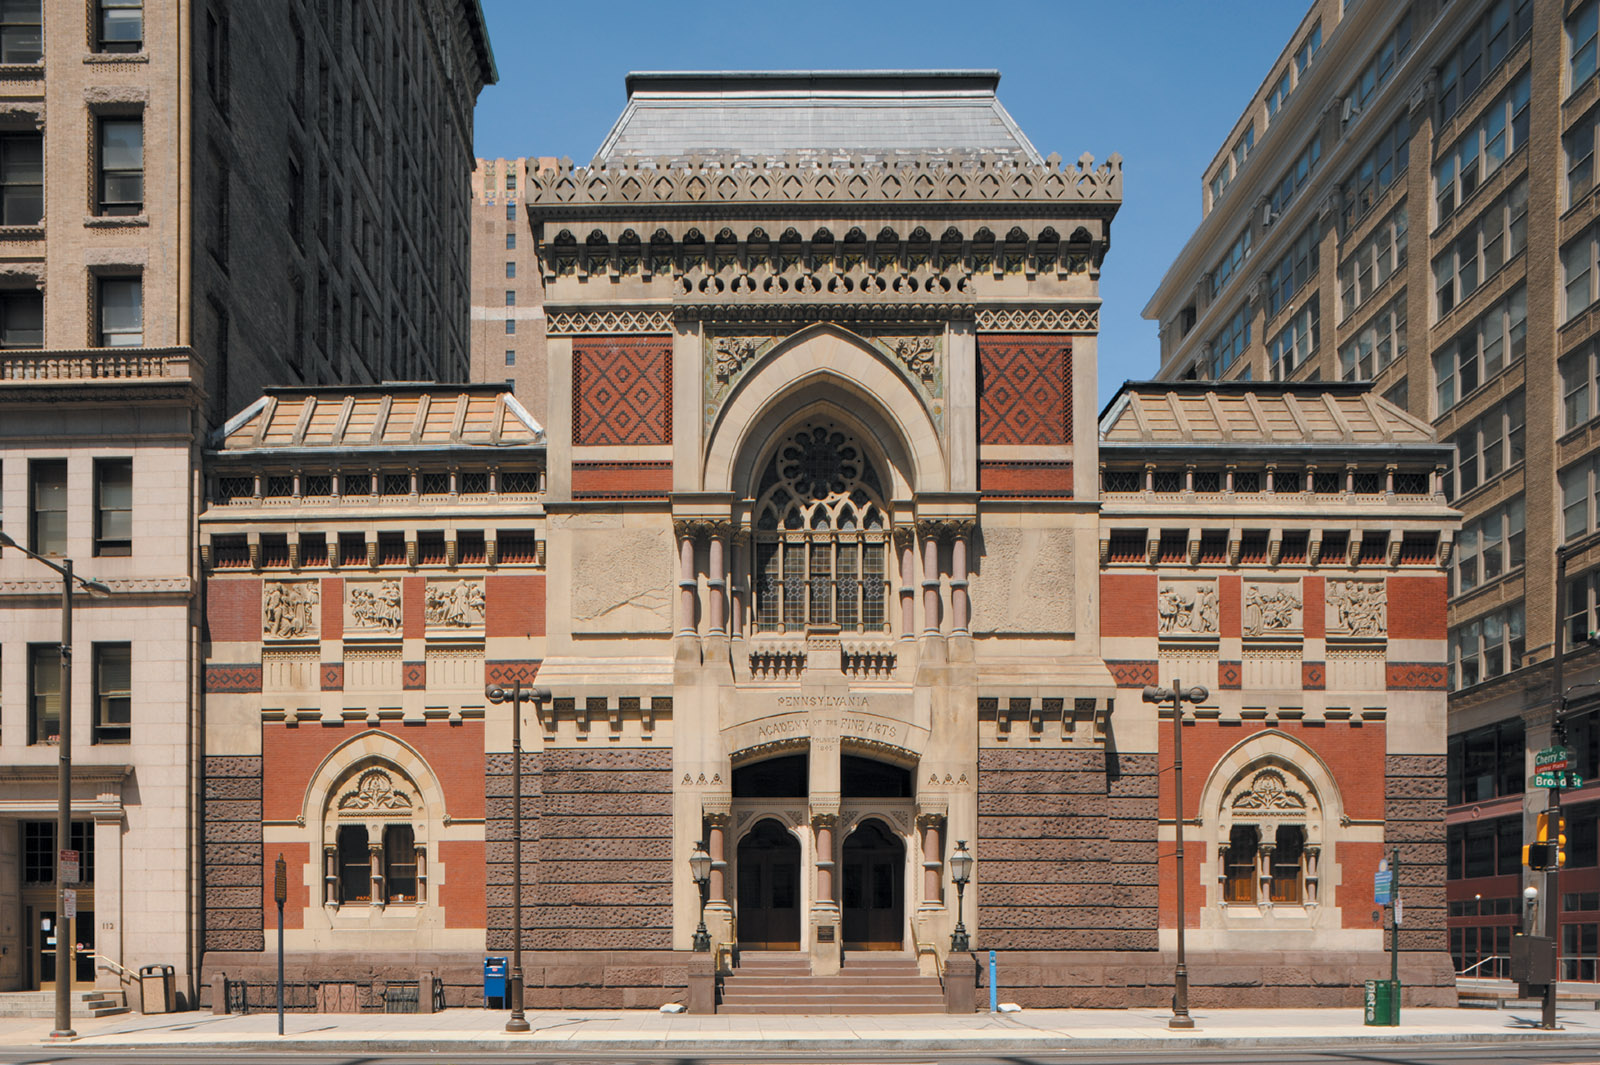 The front façade of the Pennsylvania Academy of the Fine Arts, Philadelphia; designed by Frank Furness, 1871–1876